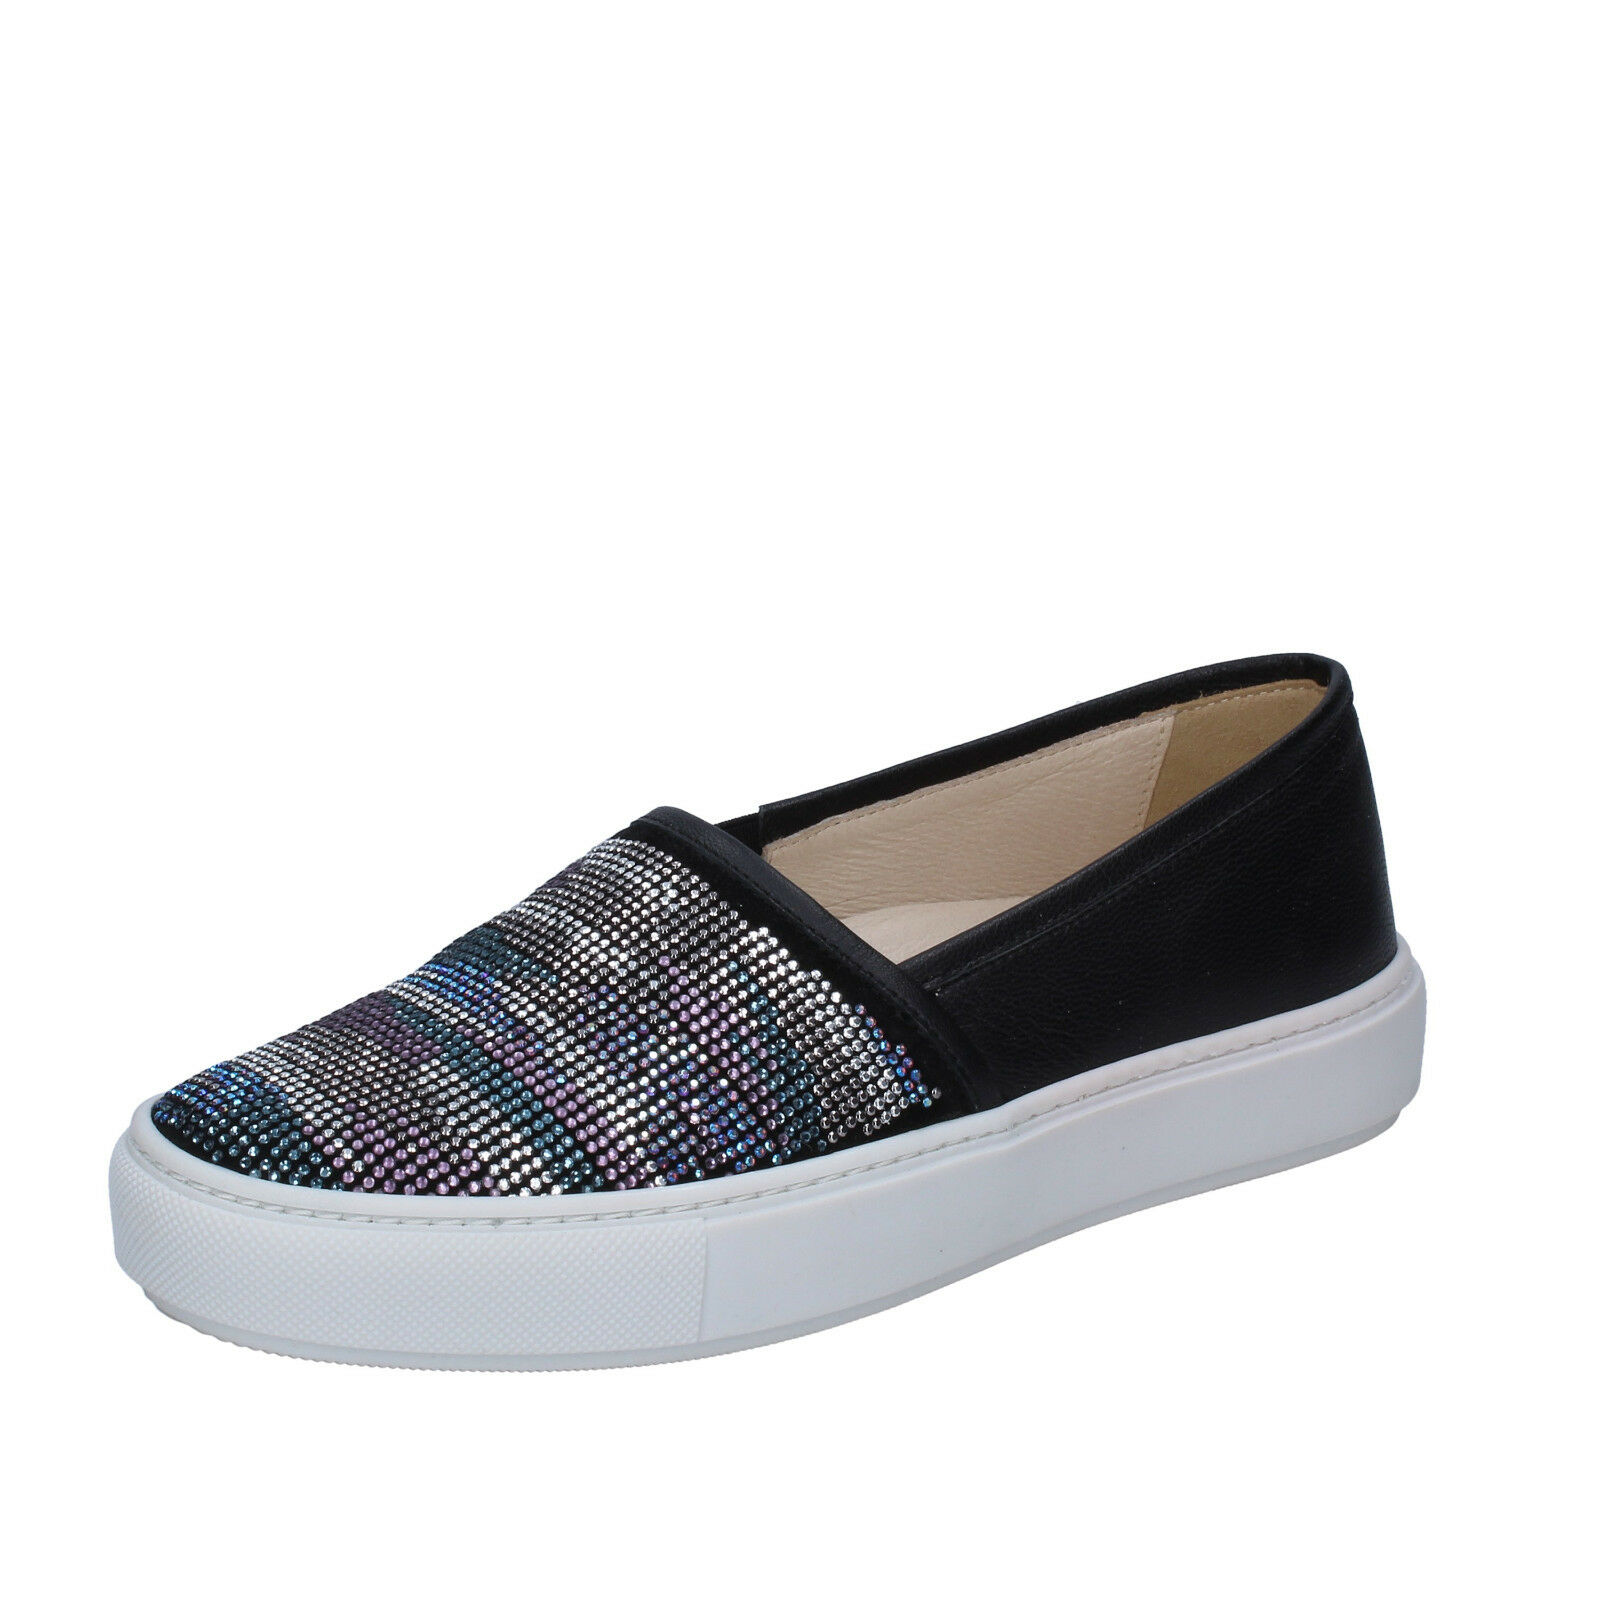 Wouomo scarpe JANET SPORT 6 (EU 36) slip on nero leather suede strass BT533-36